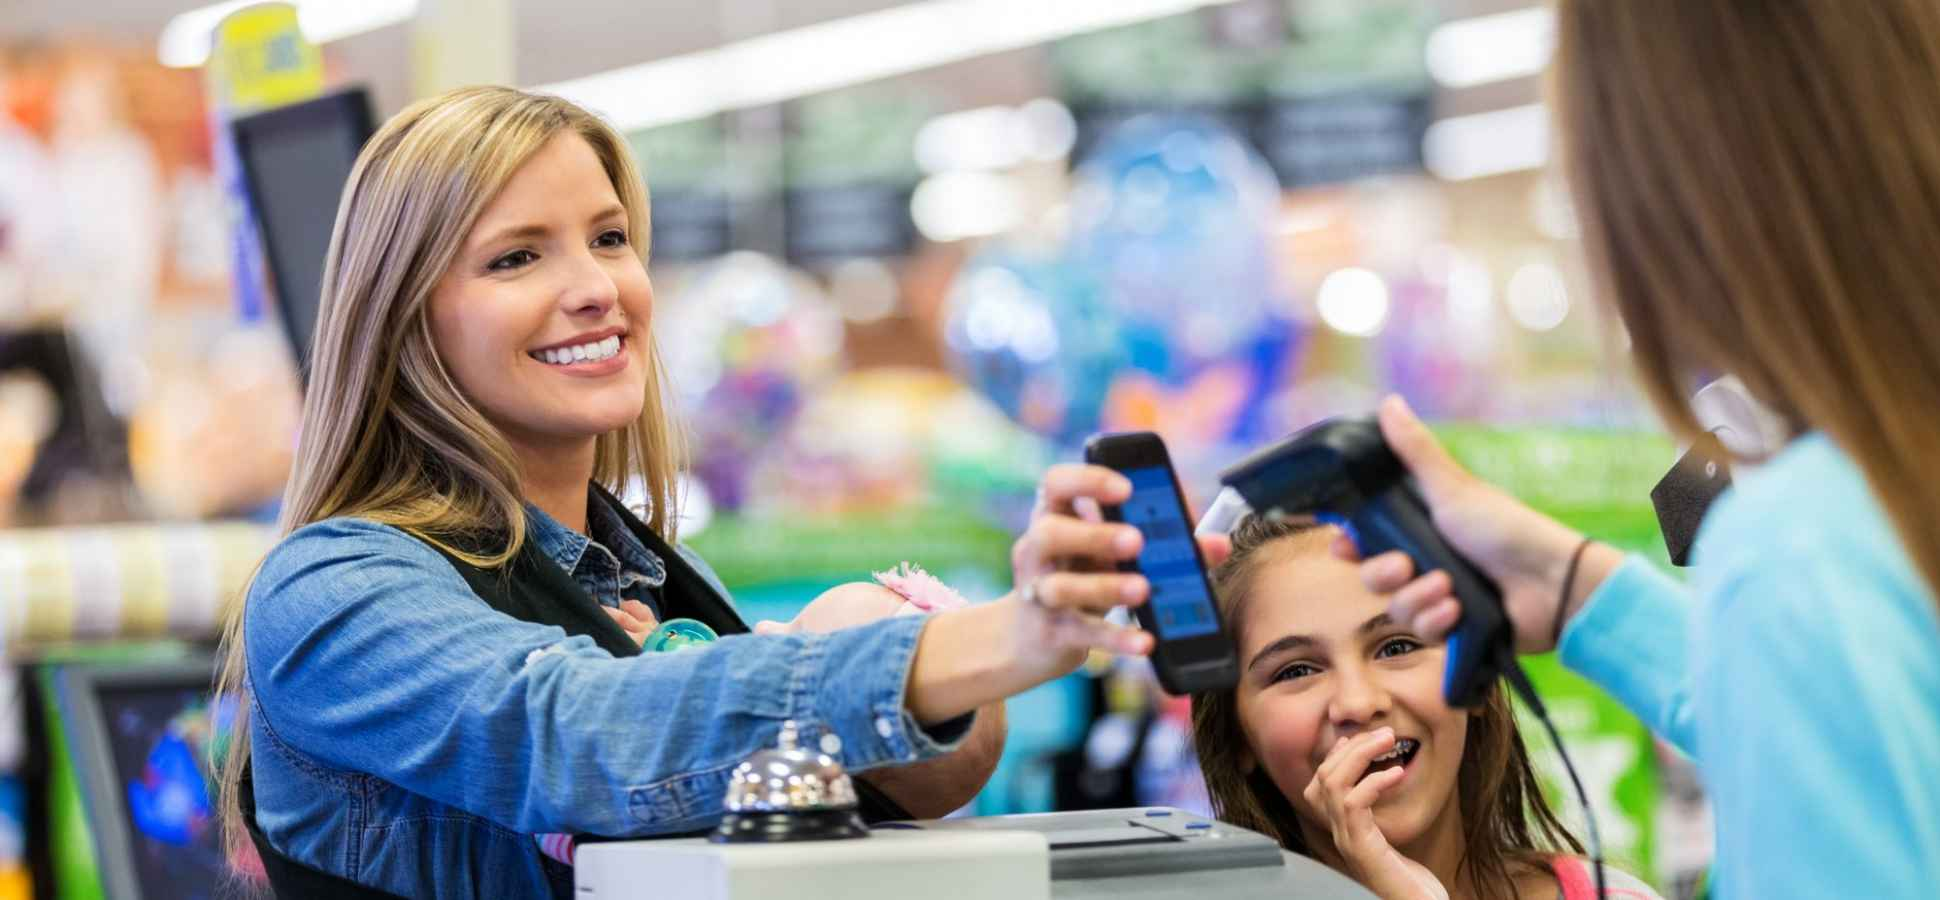 NRF Survey Shows Most Shopping Done In-Store But Online Tools Help